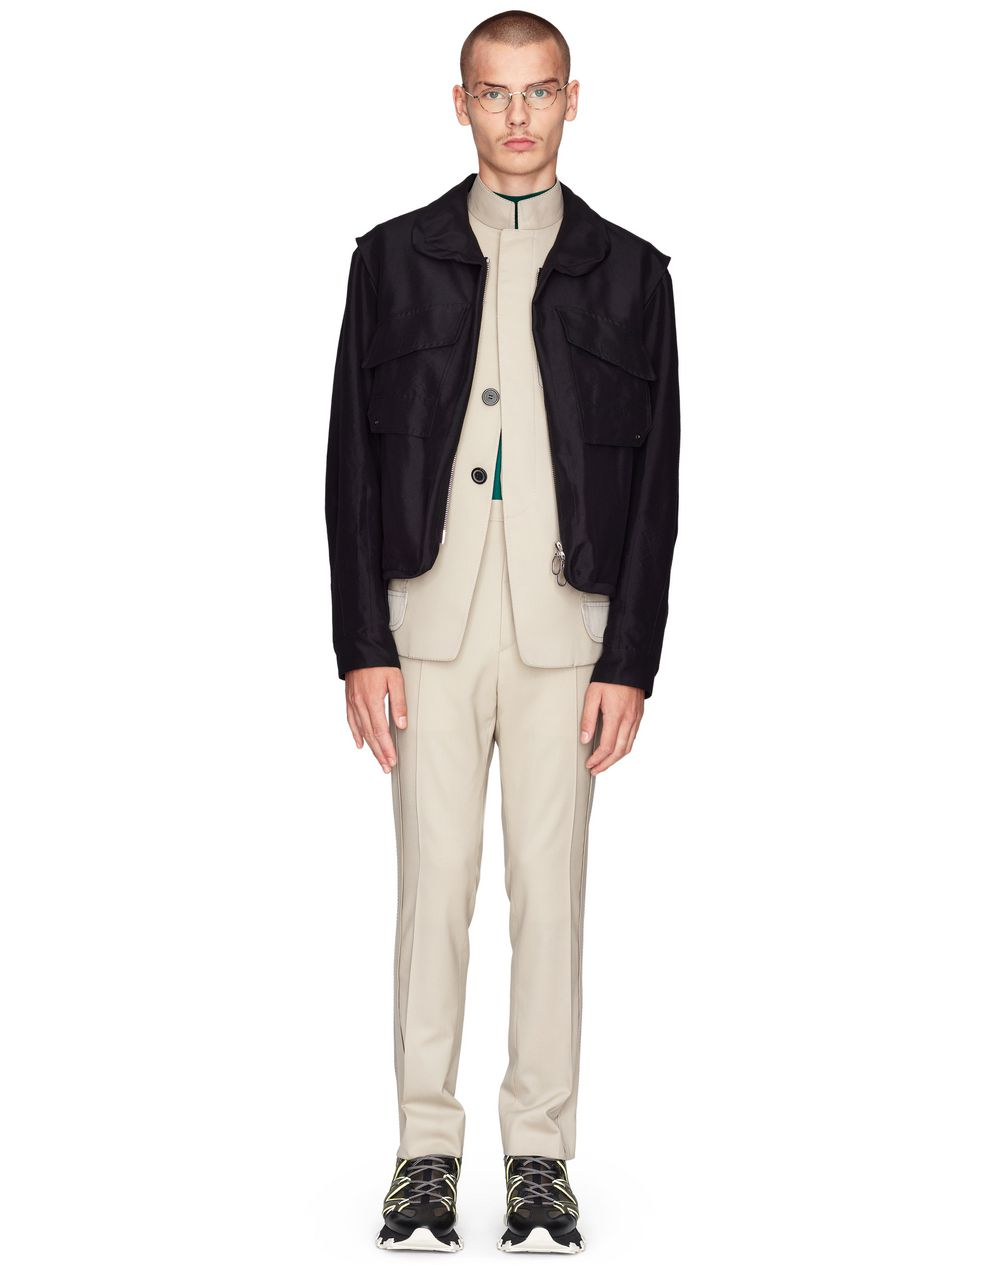 SHORT BLACK JACKET WITH LACING DETAILS    - Lanvin